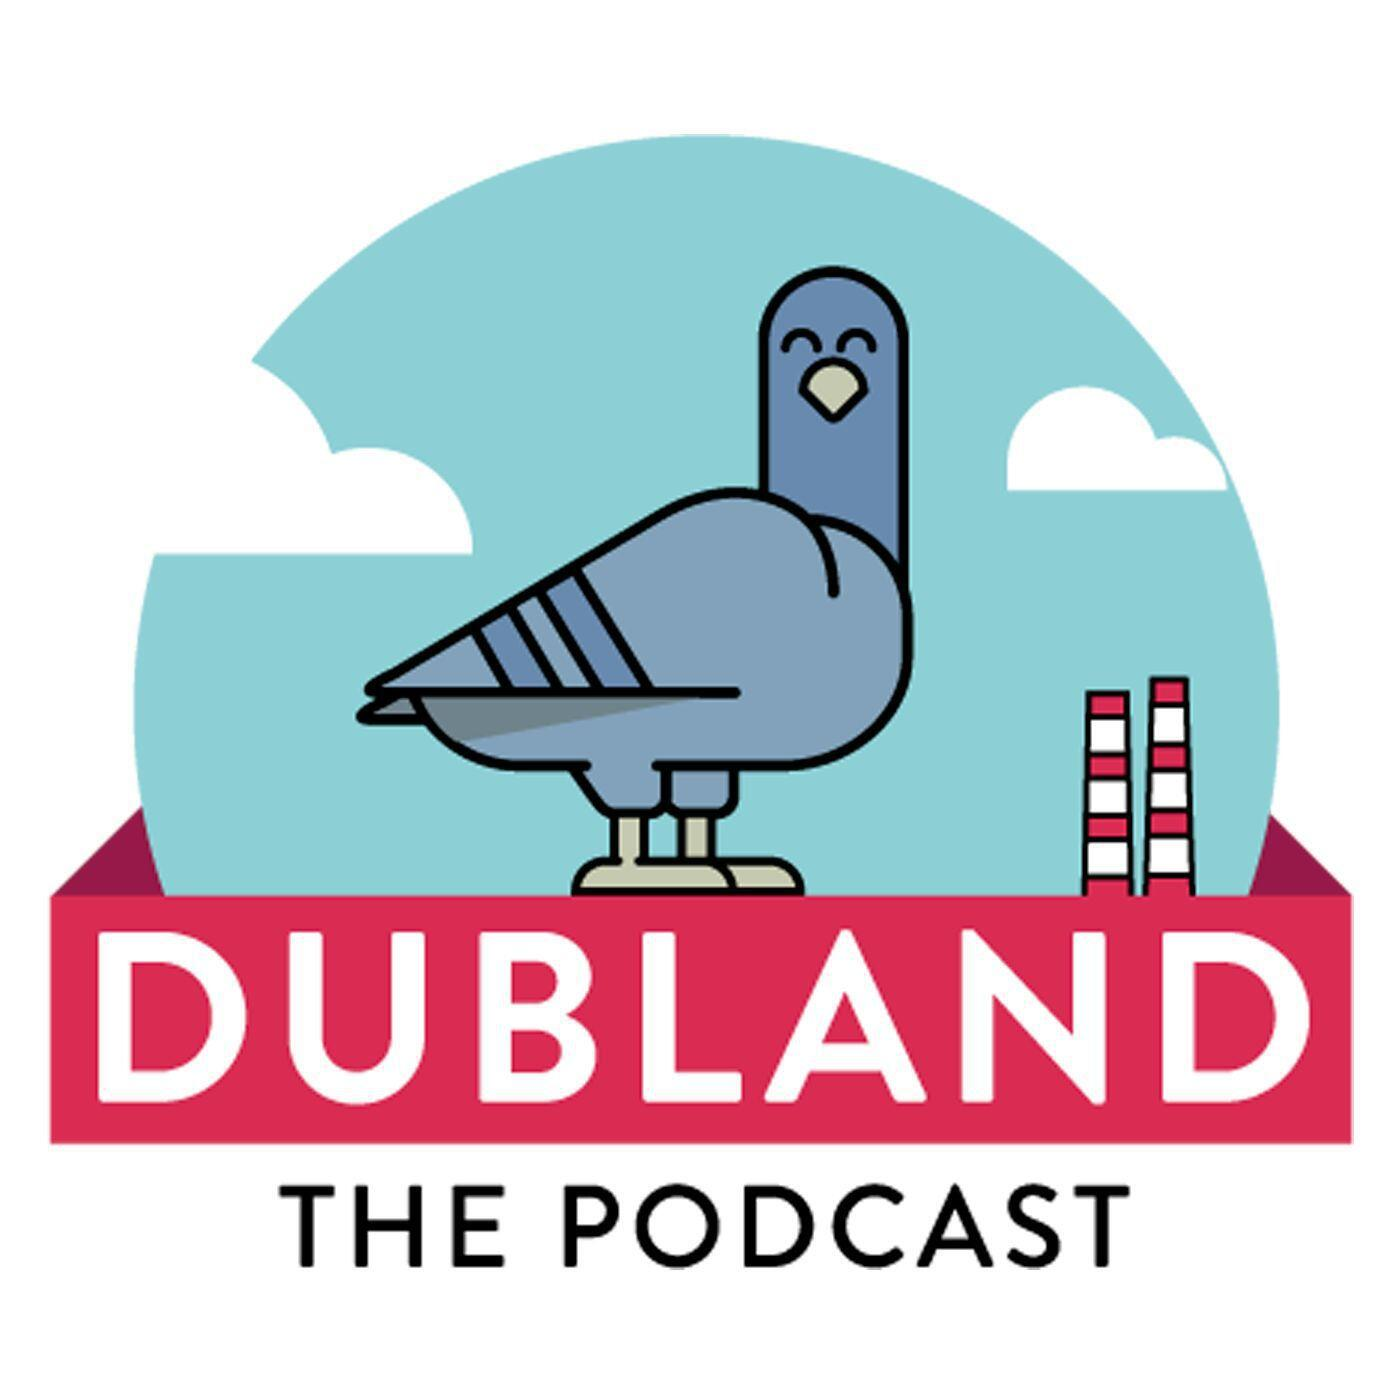 DUBLAND THE PODCAST EPISODE TWELVE